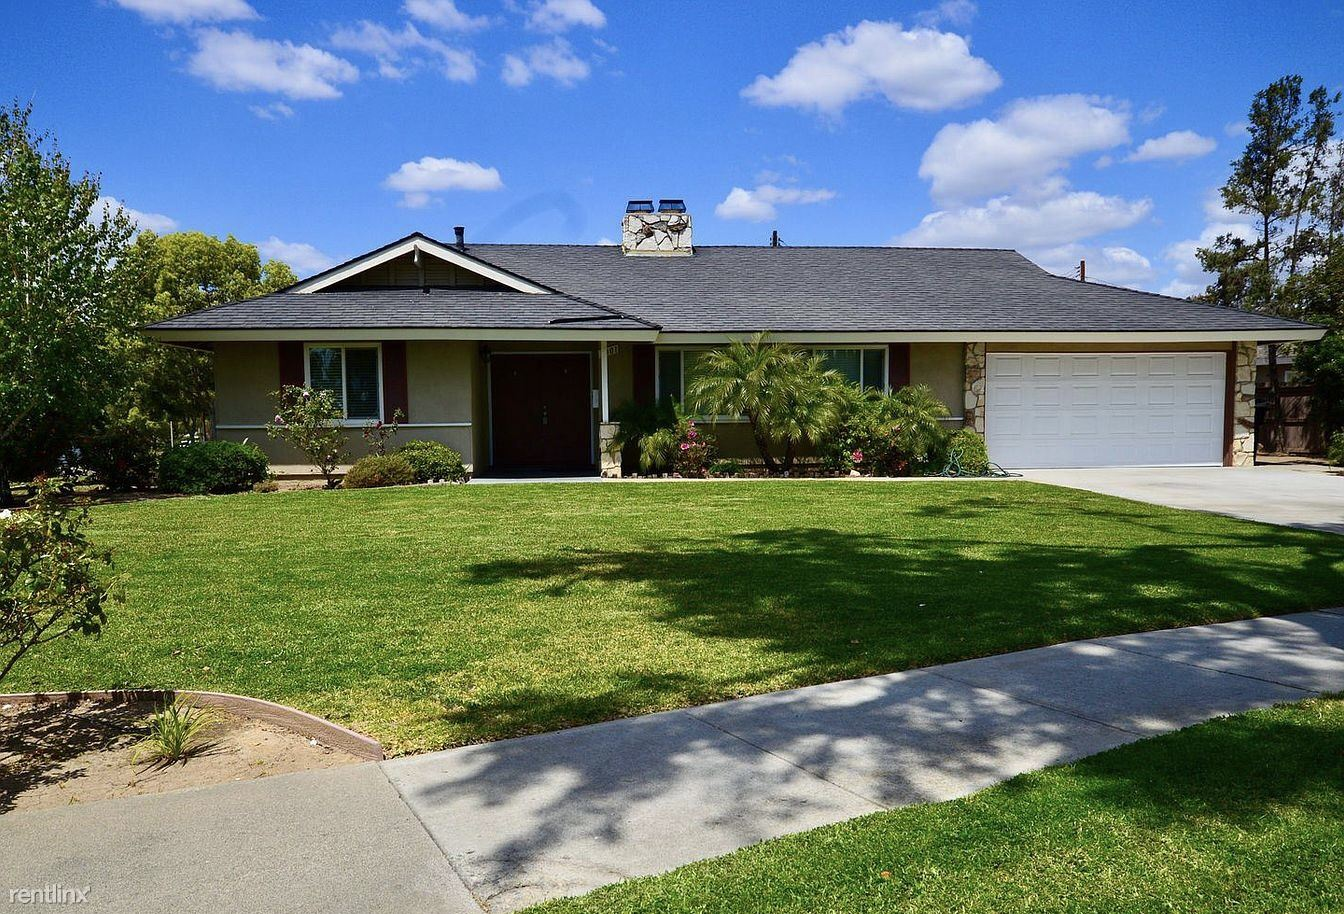 3001 Mulberry Ave, Fullerton, CA - $2,675 USD/ month